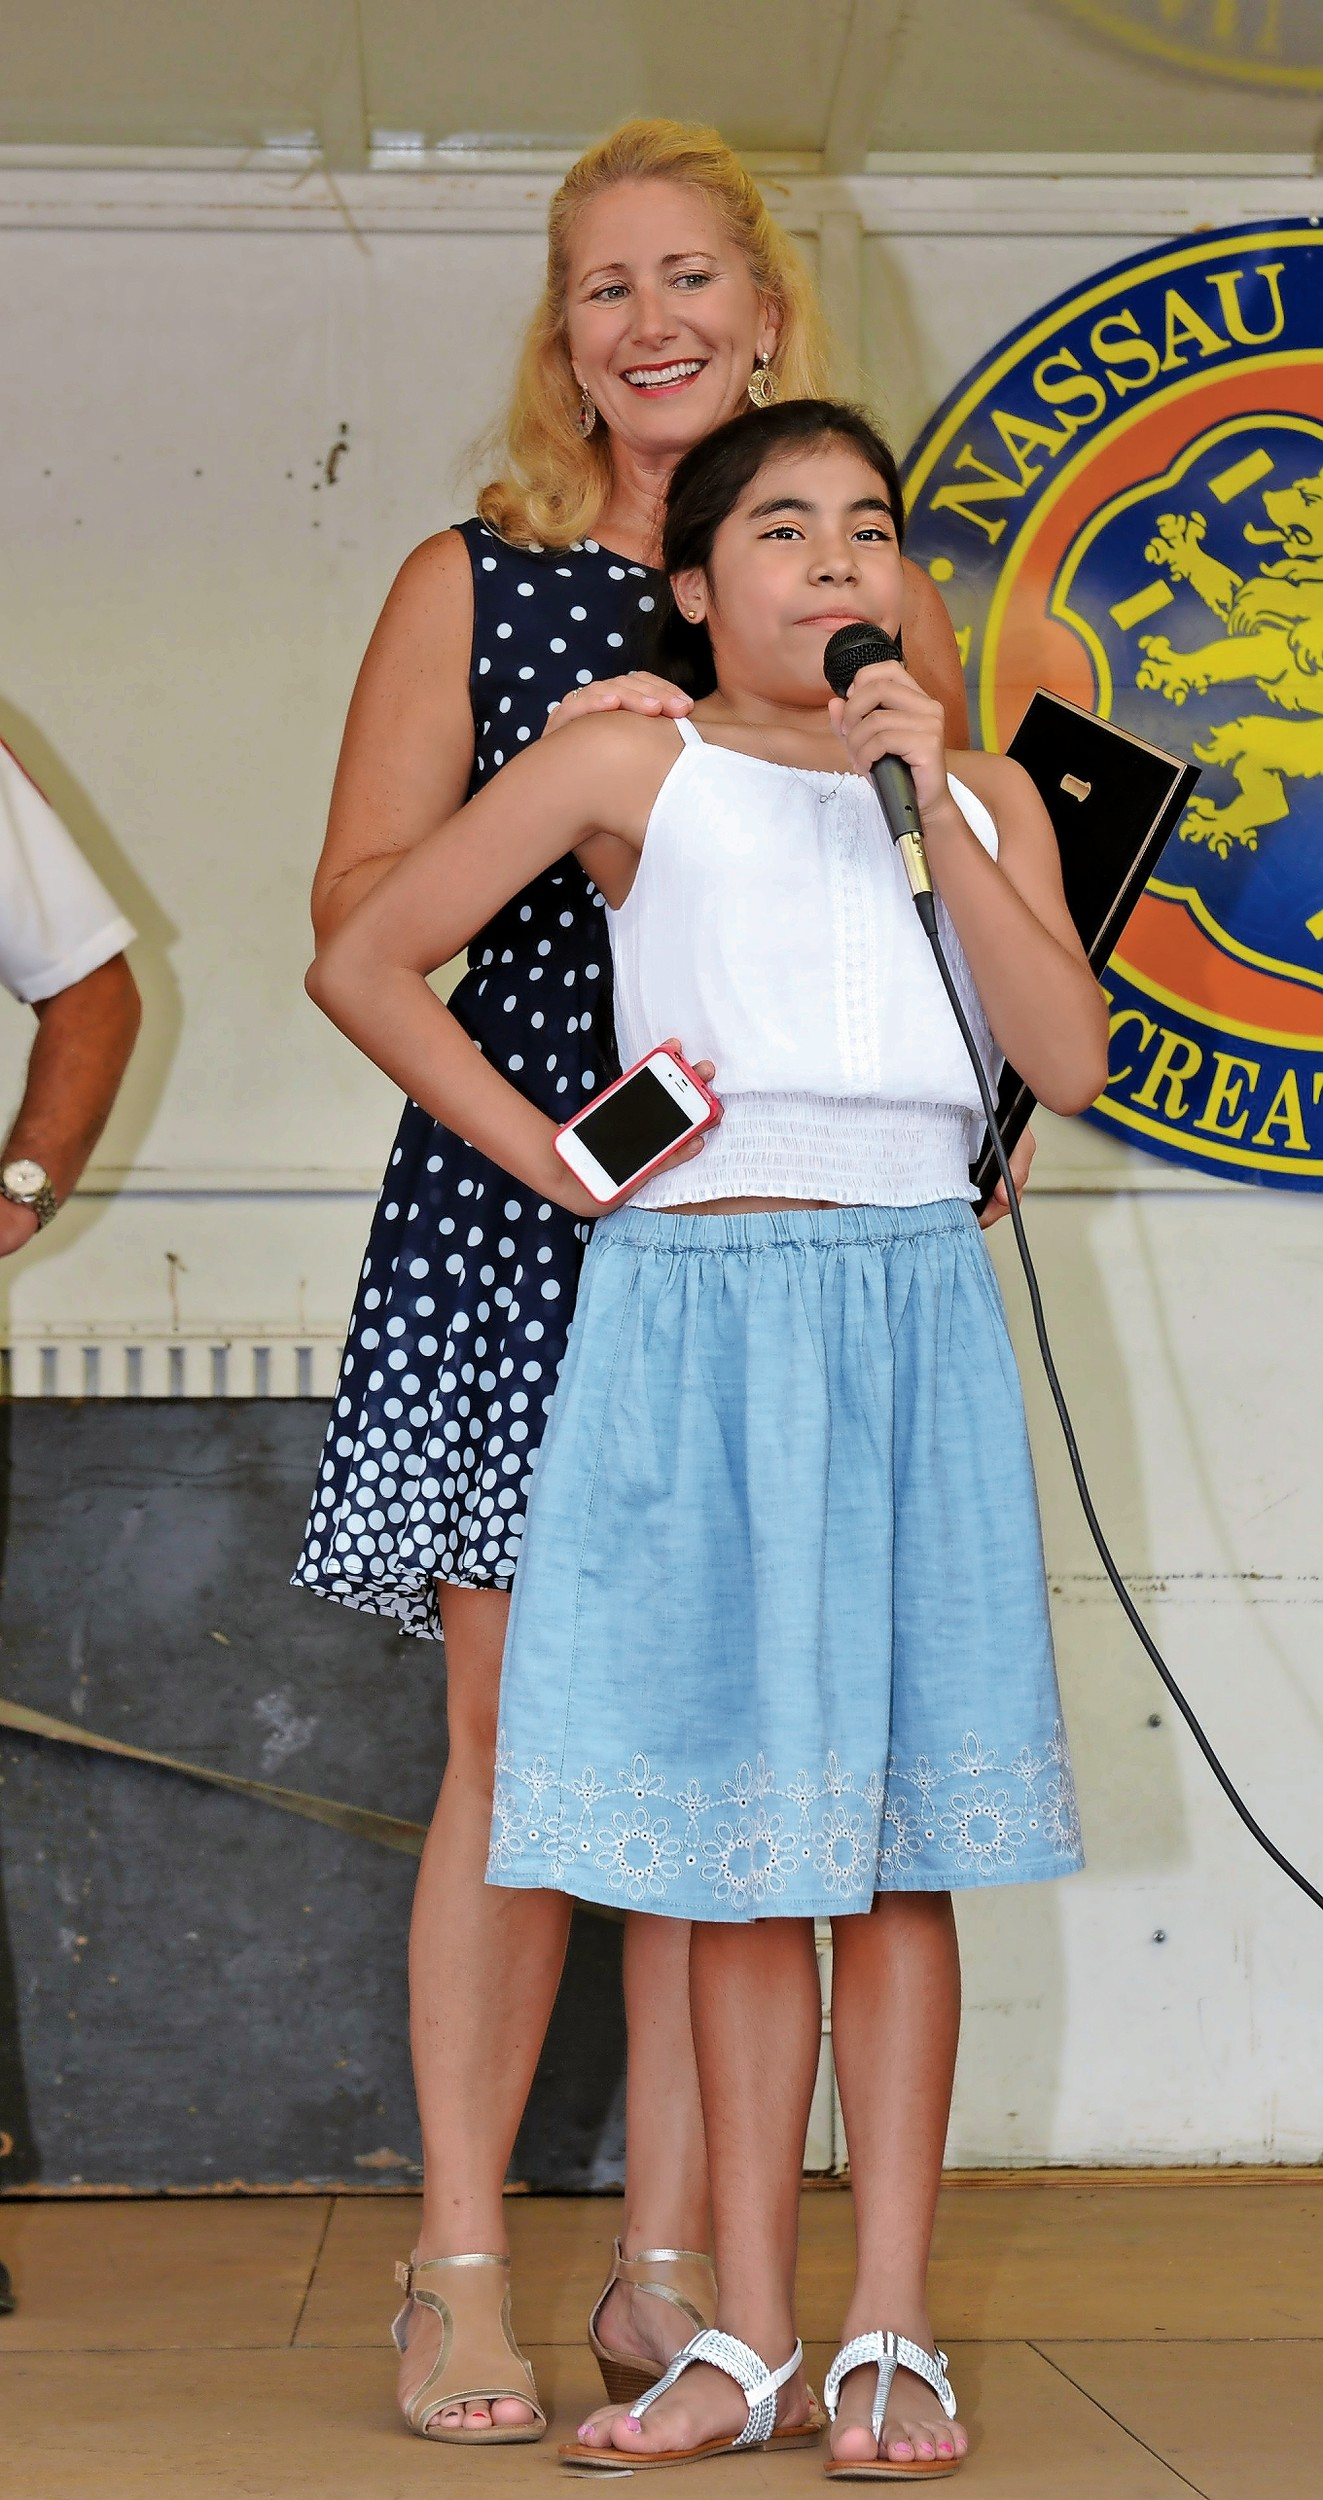 Eleven-year-old Mia Tyler came to Glen Cove's National Night Out, where her kidney donor, Coleen Spinello, was honored for her work as a child and community advocate.